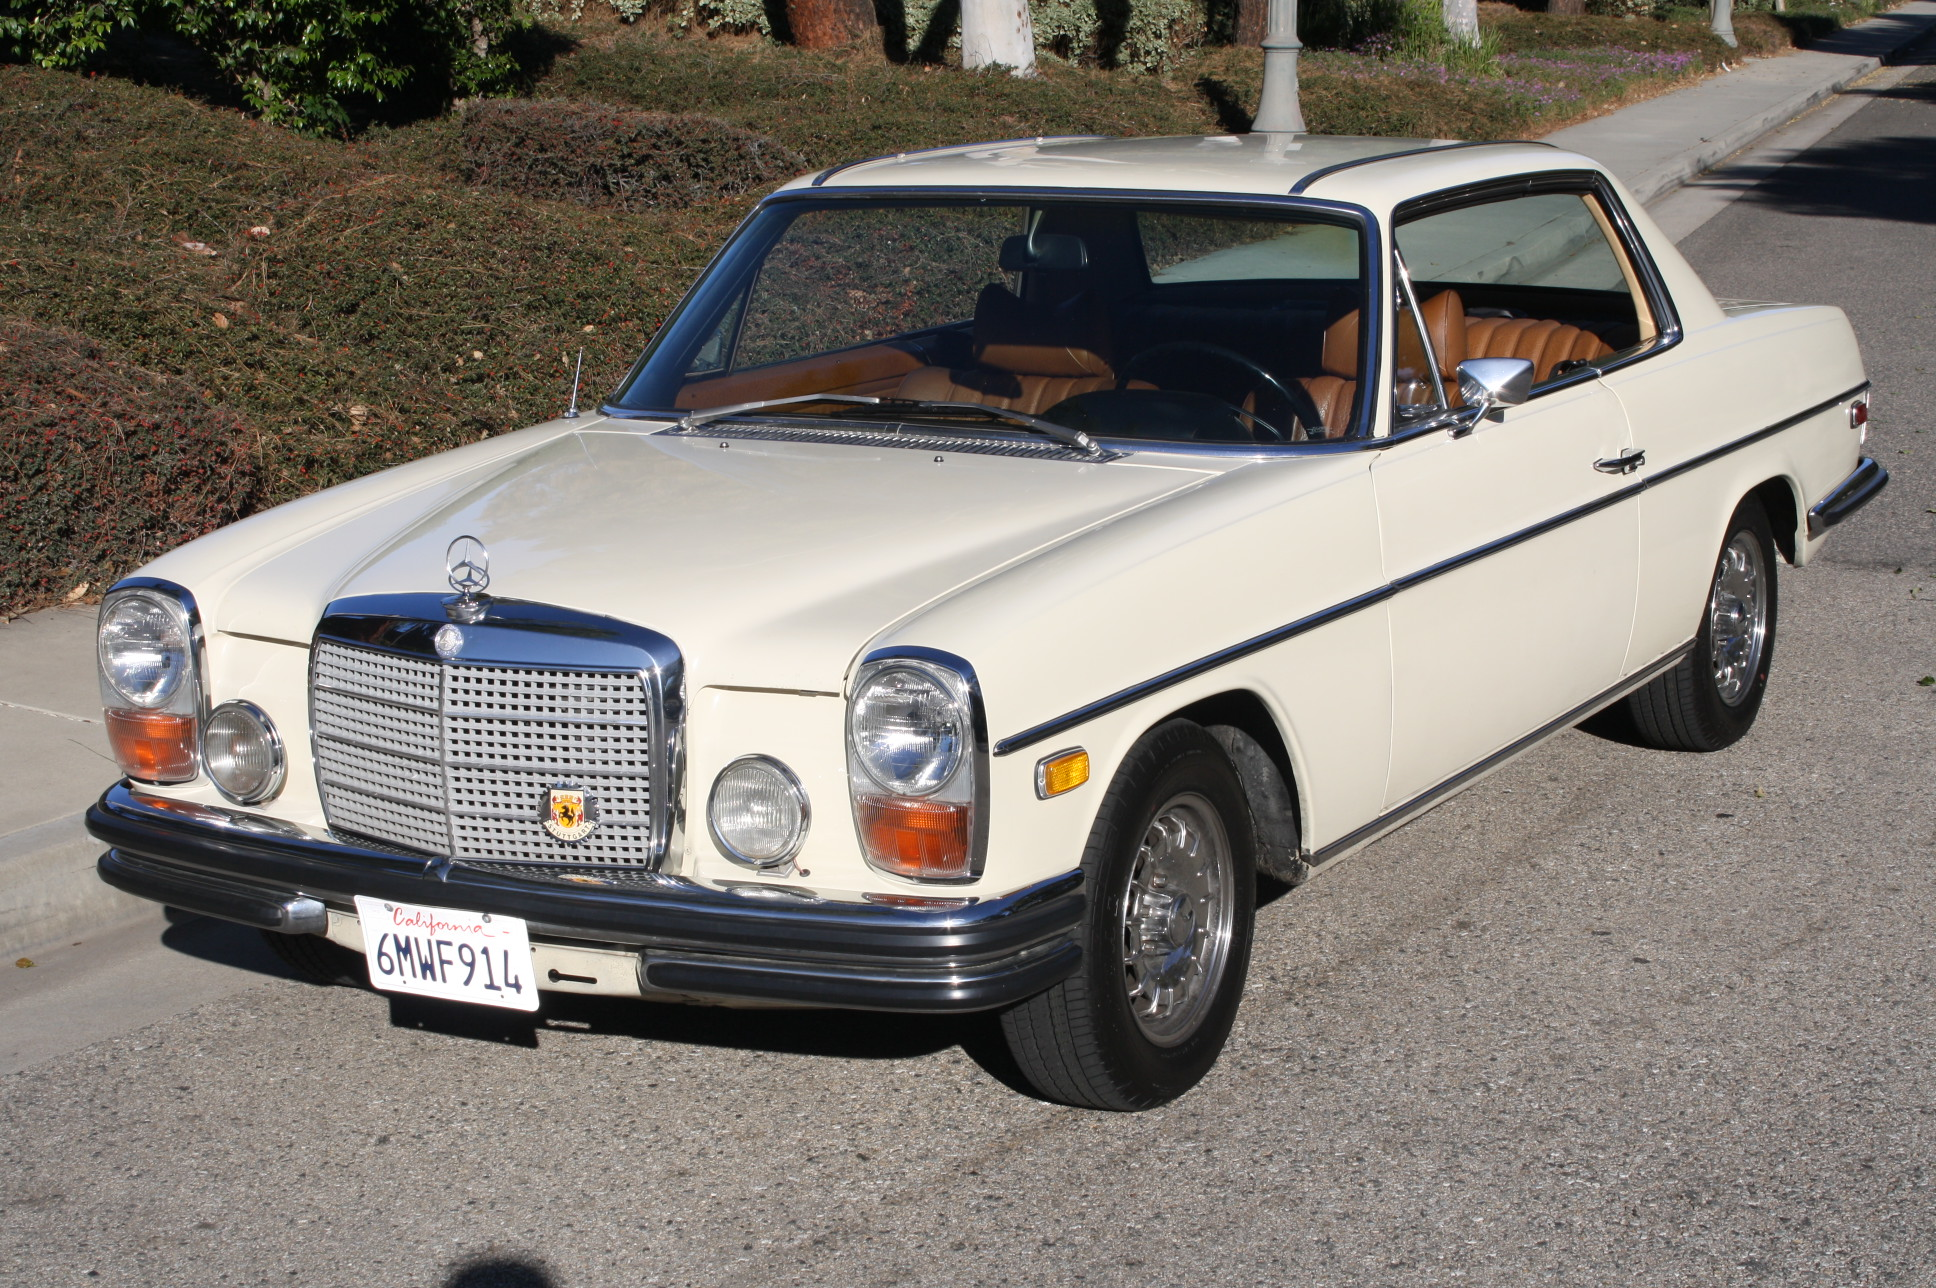 1971 mercedes benz 250 information and photos momentcar for Facts about mercedes benz